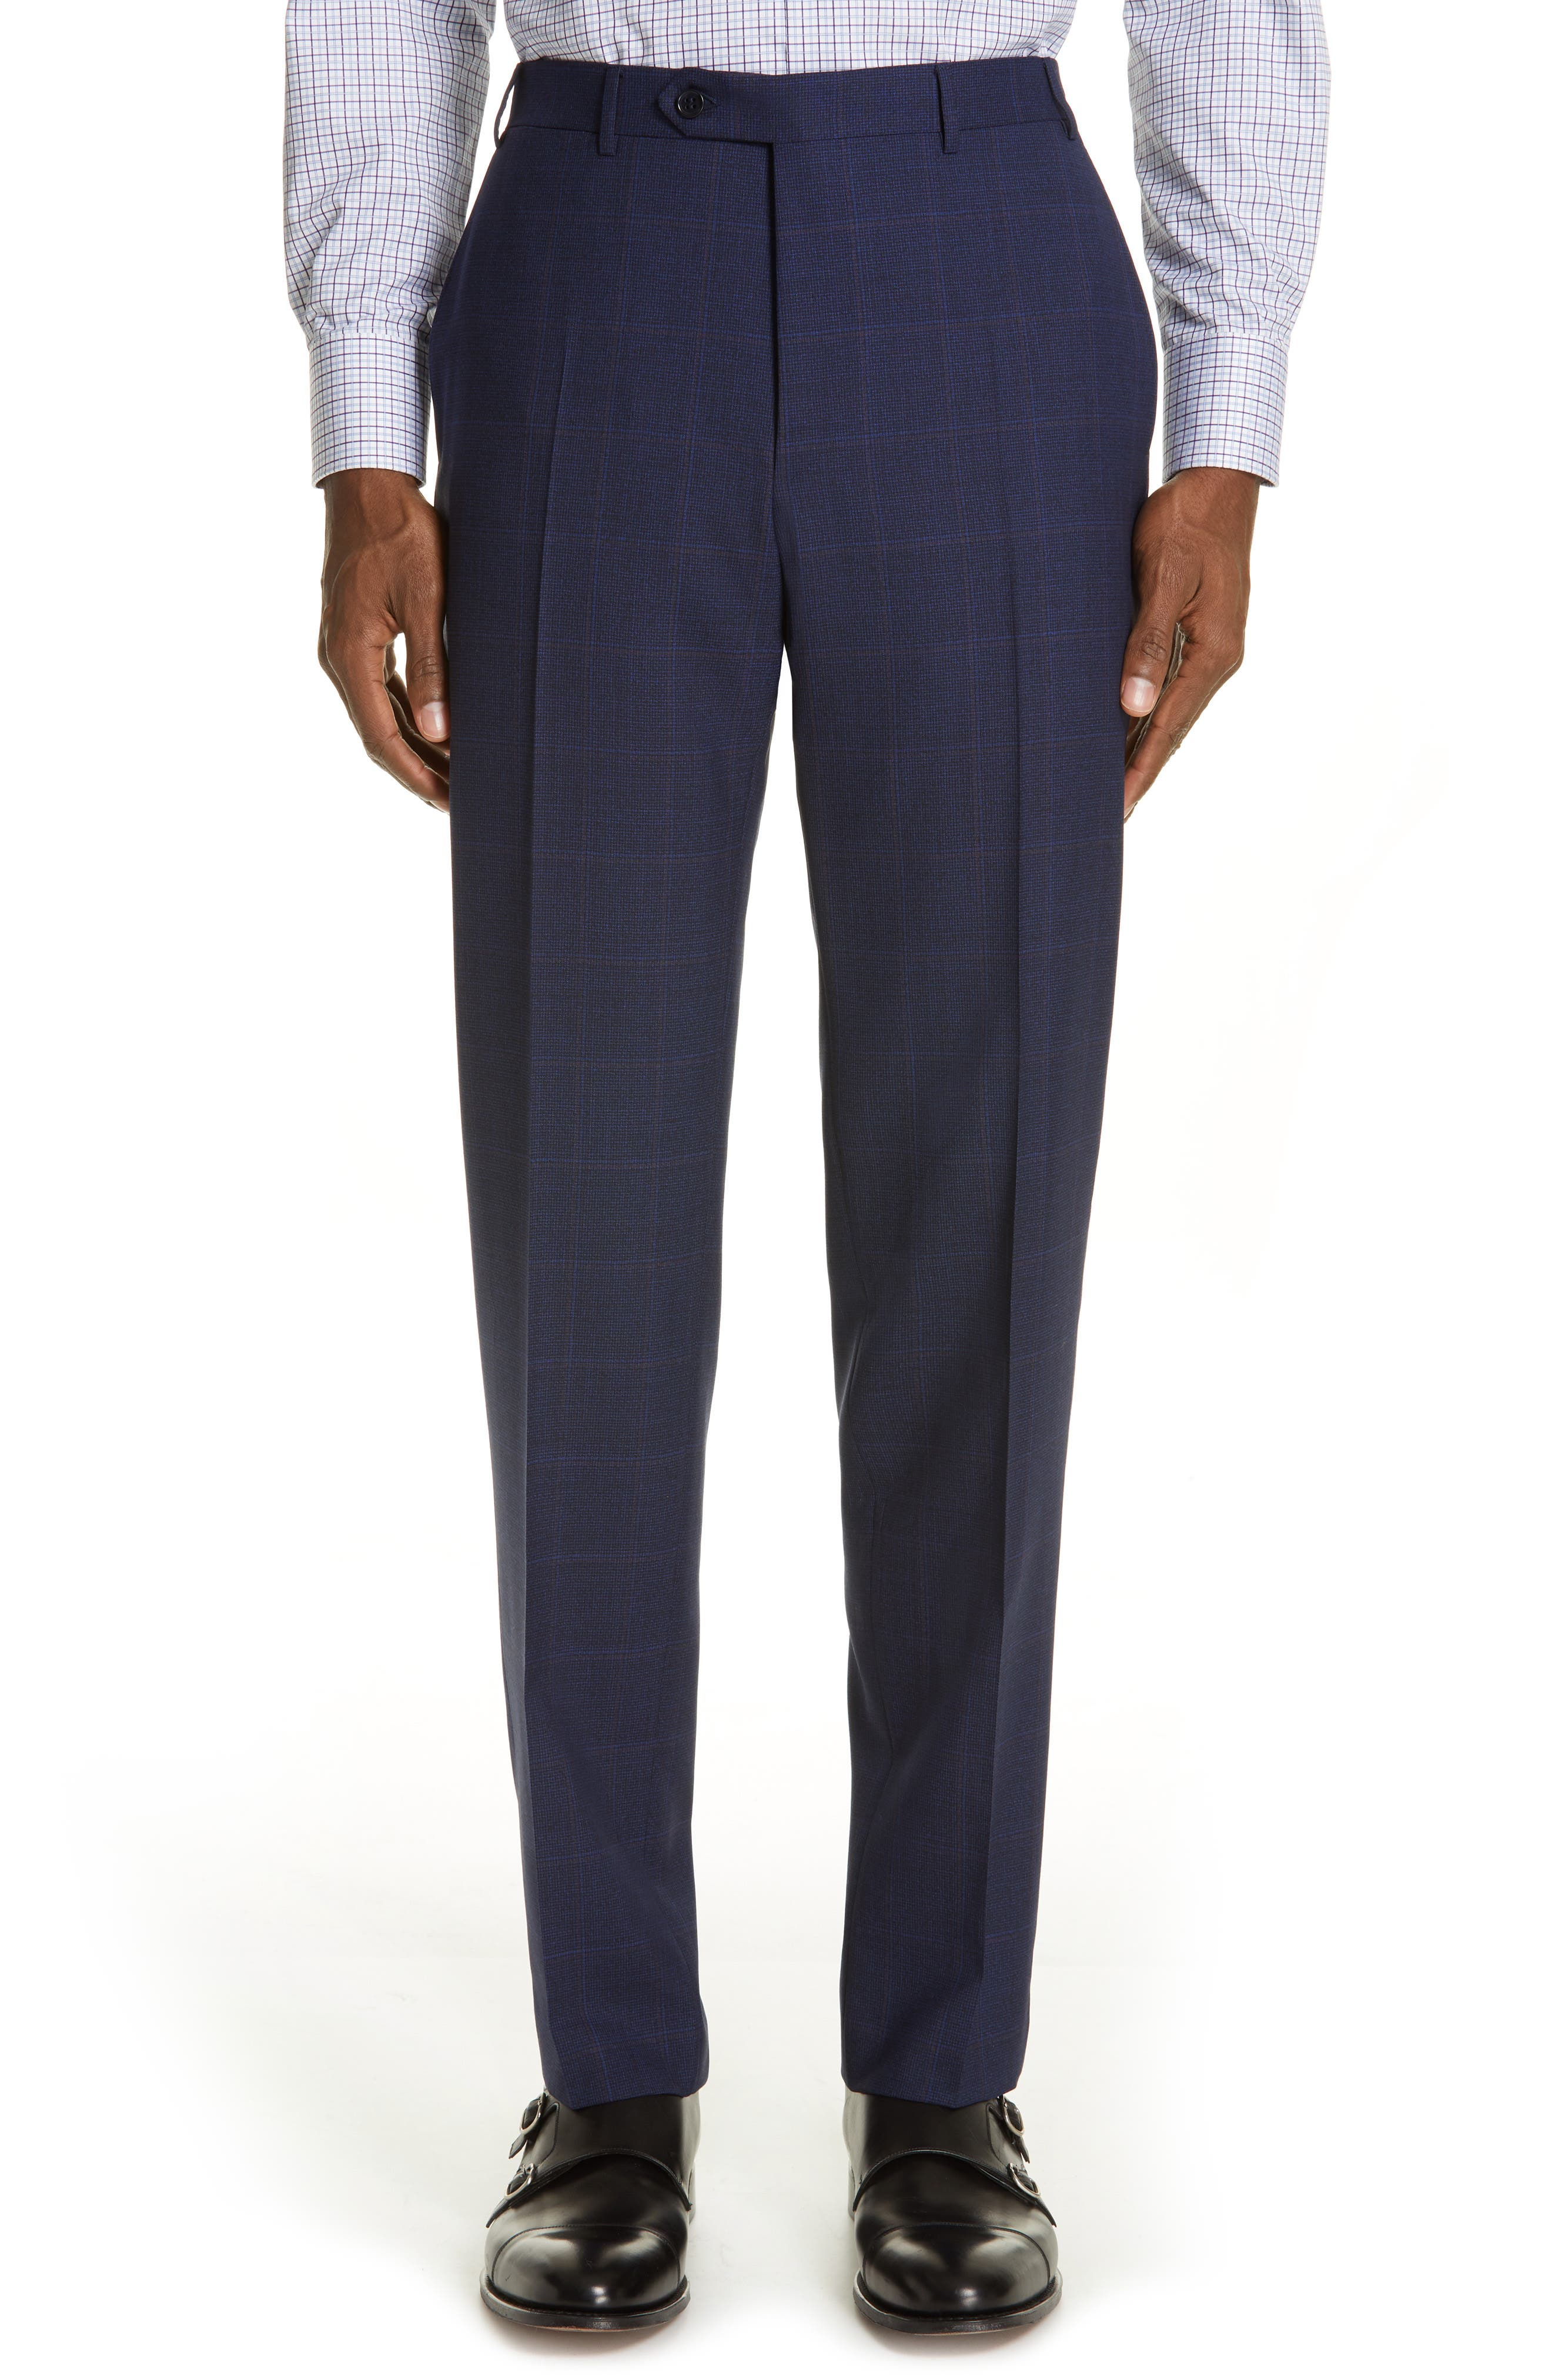 CANALI, Siena Soft Classic Fit Plaid Wool Suit, Alternate thumbnail 6, color, NAVY